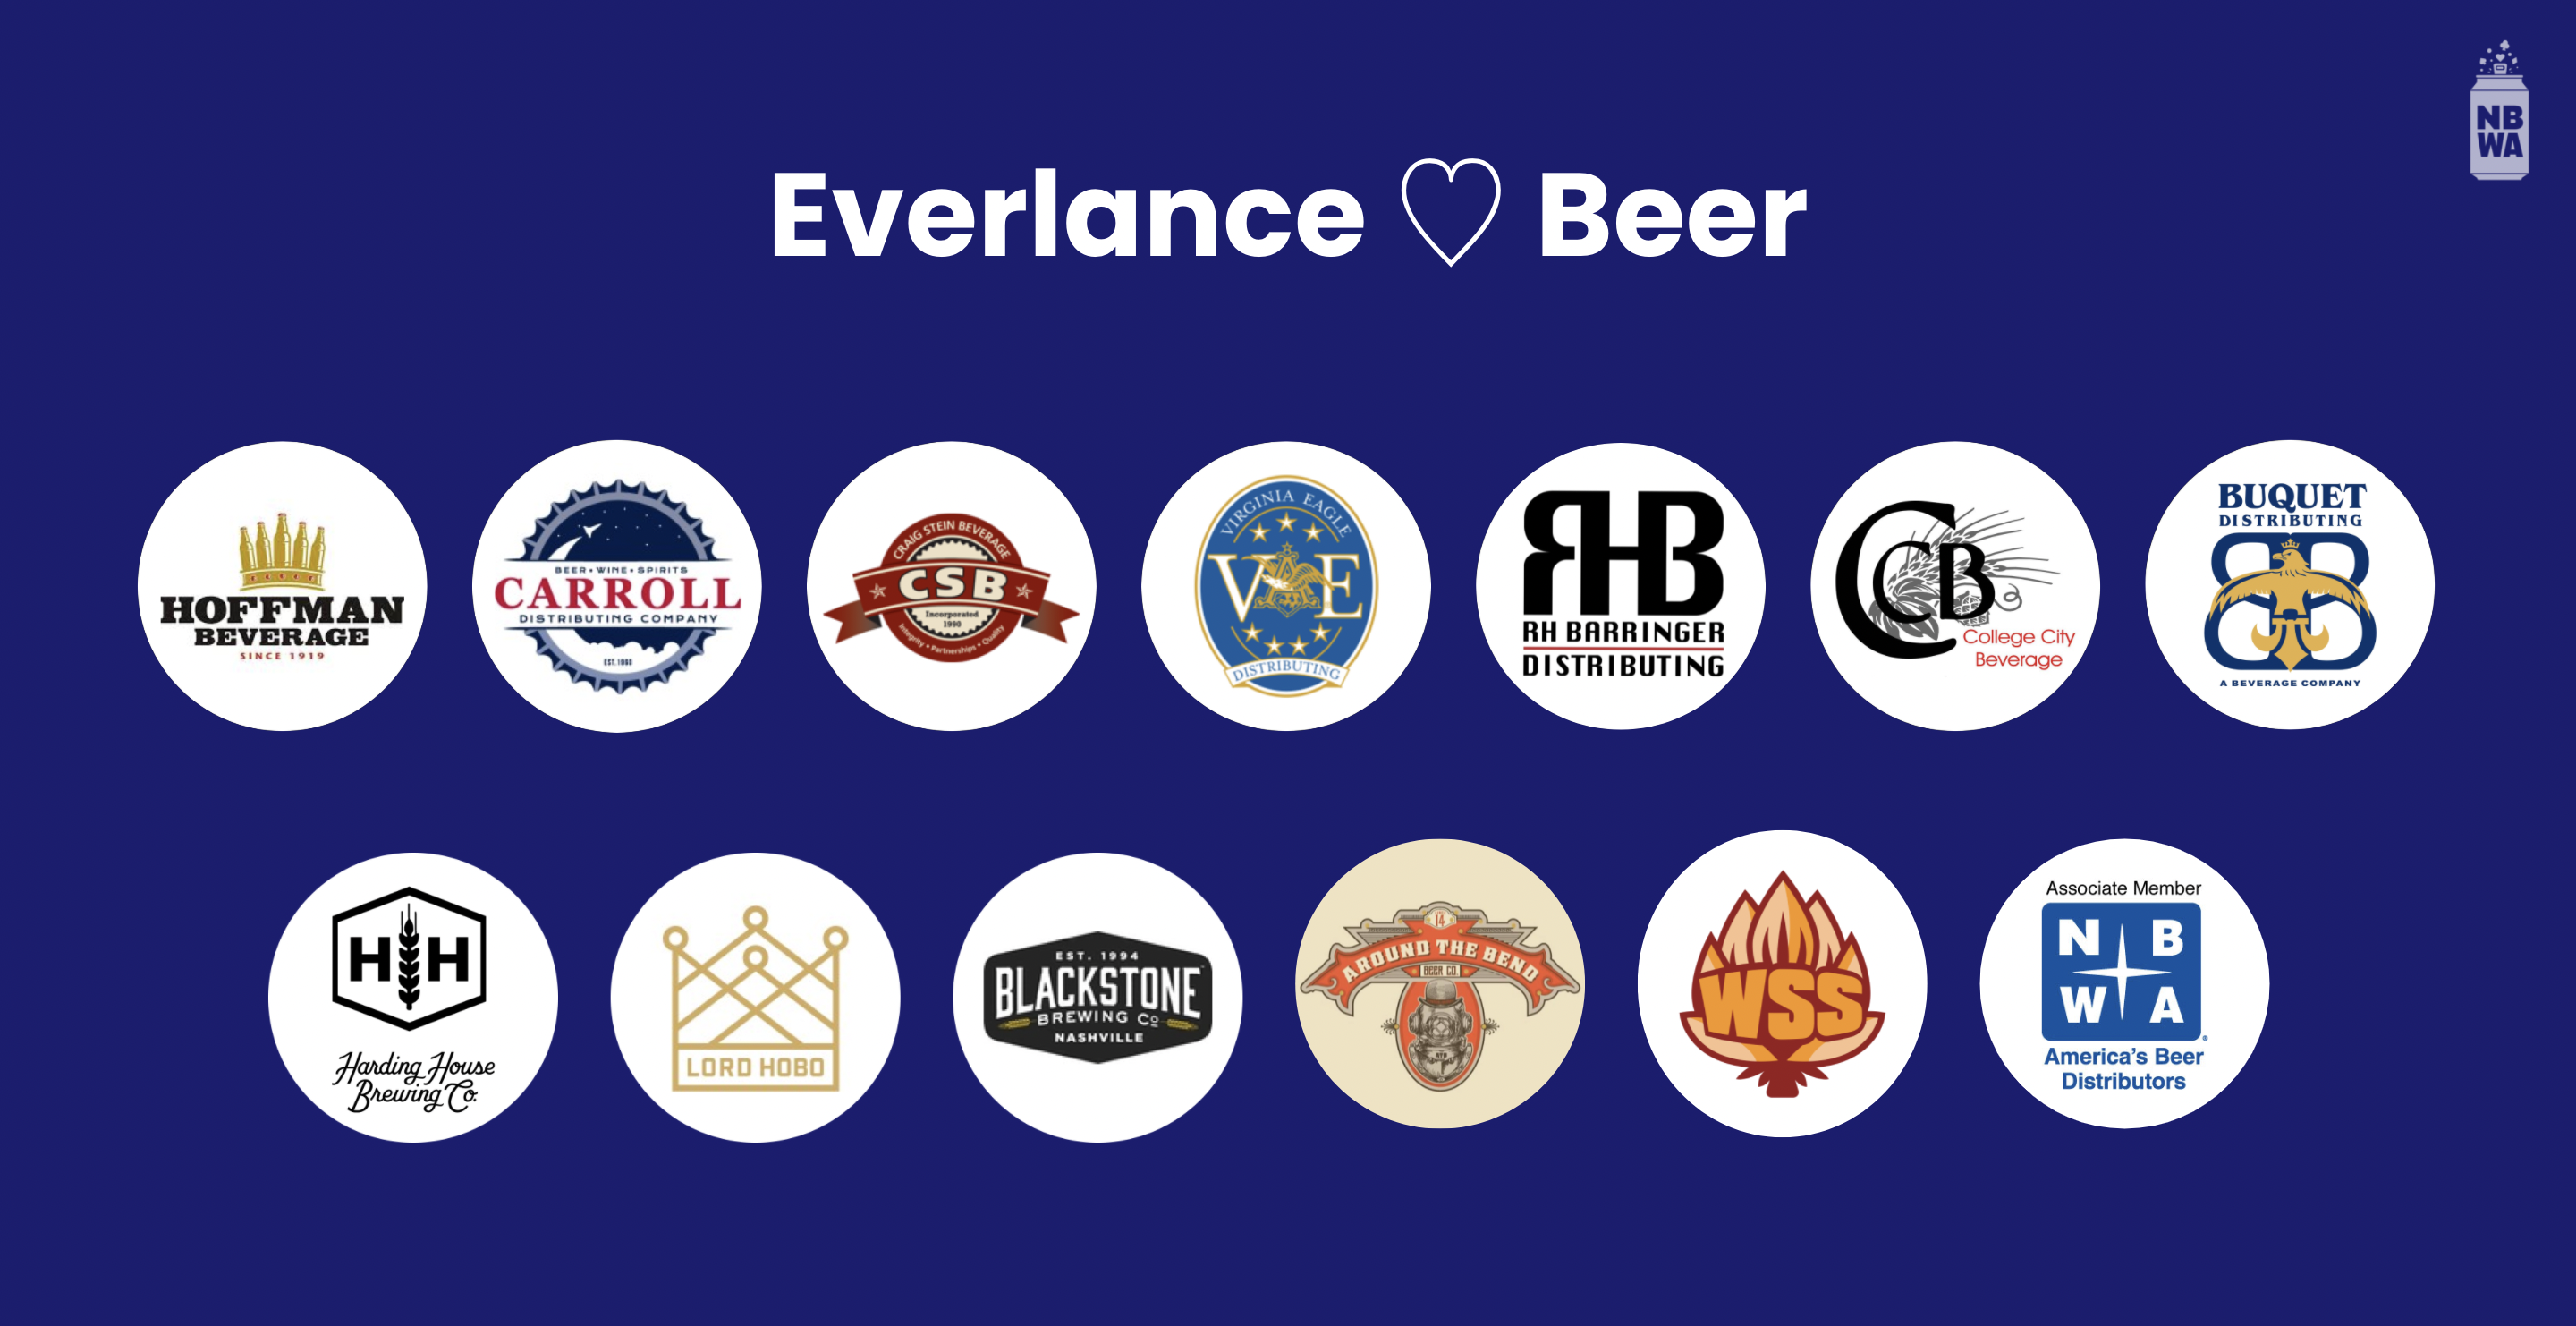 Hoffman Beverage, Carroll Distributing, Craig Stein Beverage, Virginia Eagle Distributing, R.H. Barringer, College City Beverage, Buquet Distributing and more